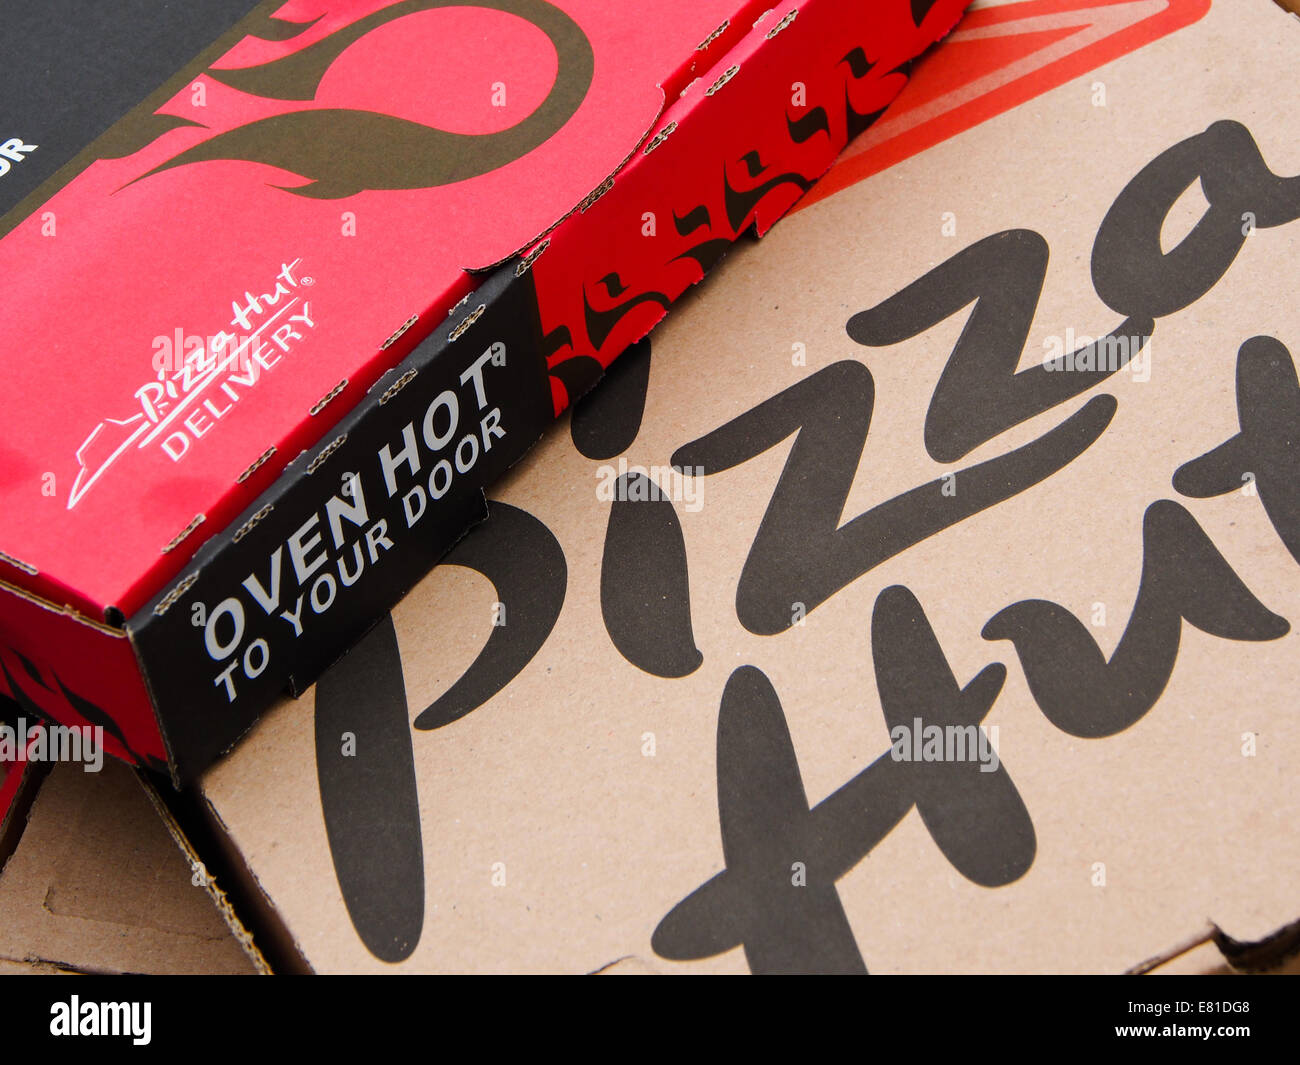 Close up of Pizza Hut takeaway boxes Stock Photo